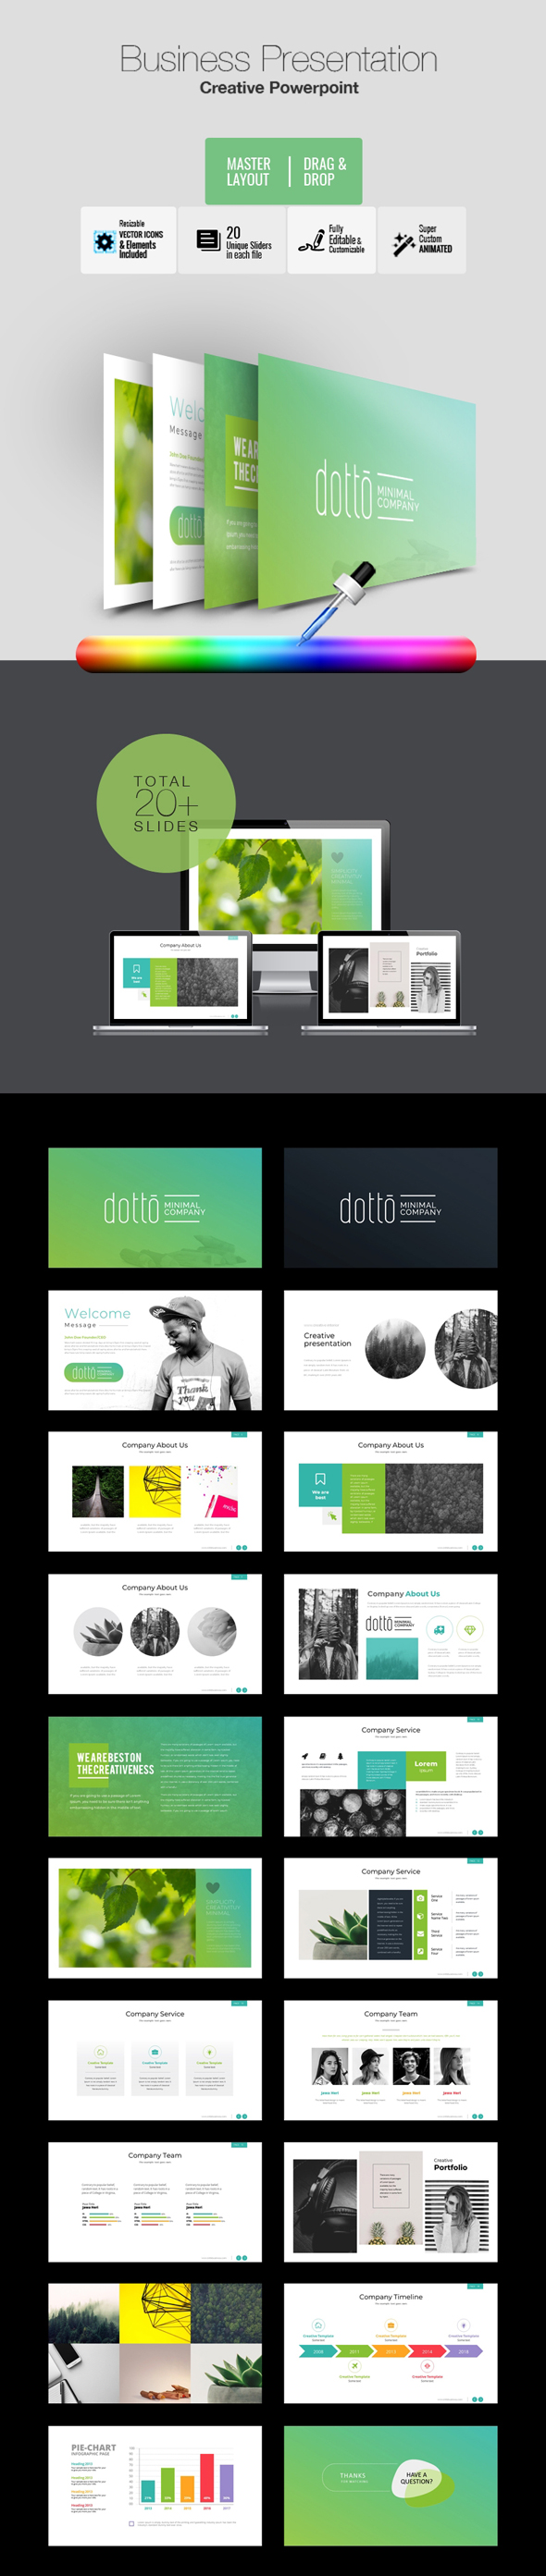 Dotto - Multipurpose PowerPoint Template - Business PowerPoint Templates